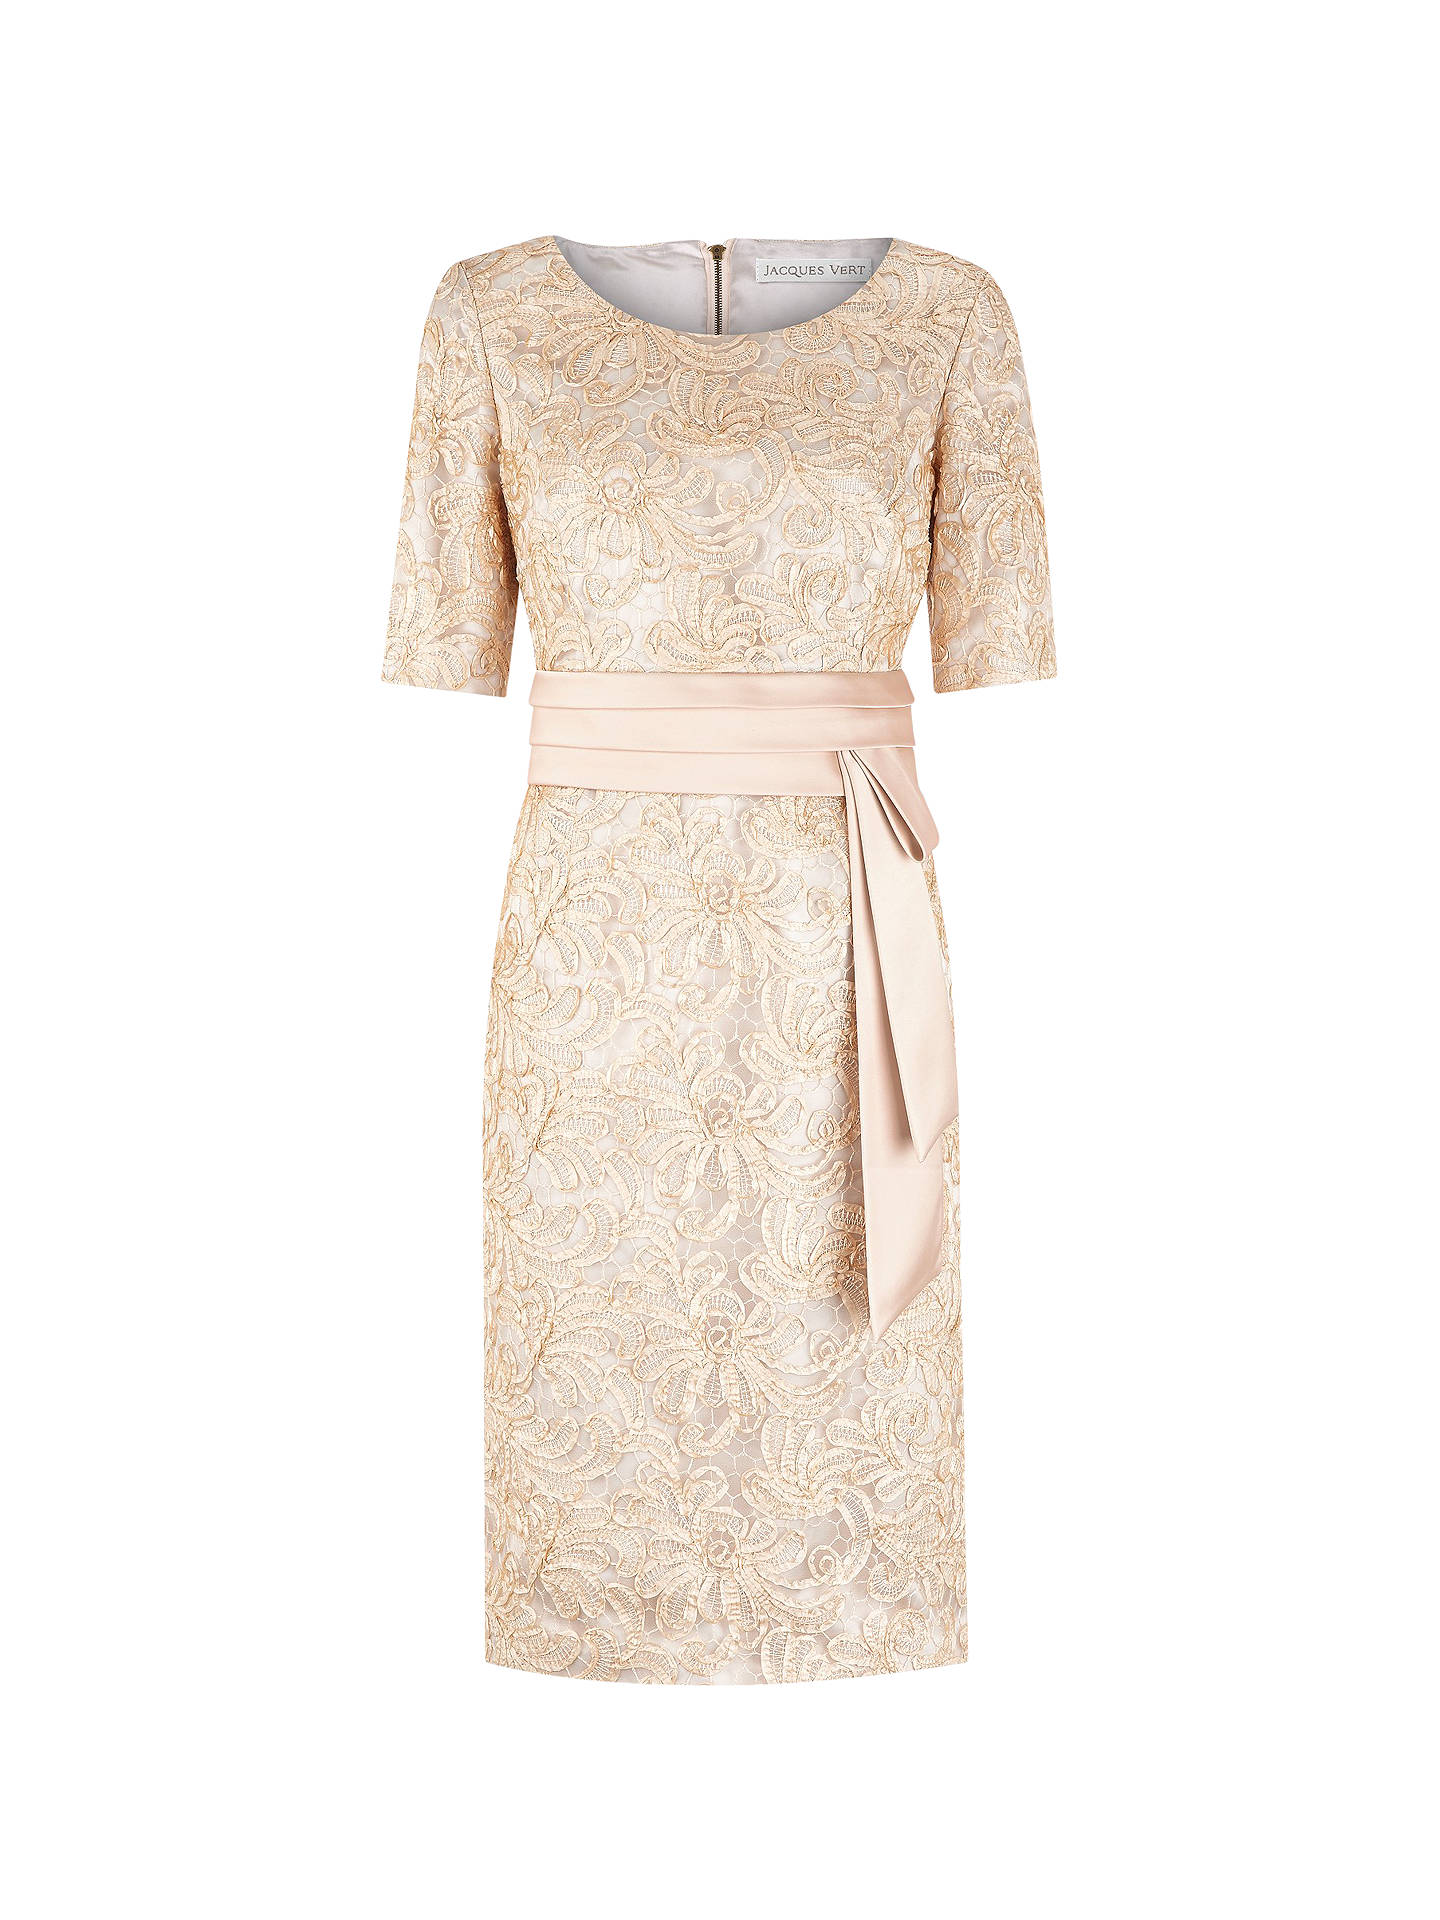 Buy Jacques Vert Ribbon Lace Dress, Gold, 10 Online at johnlewis.com